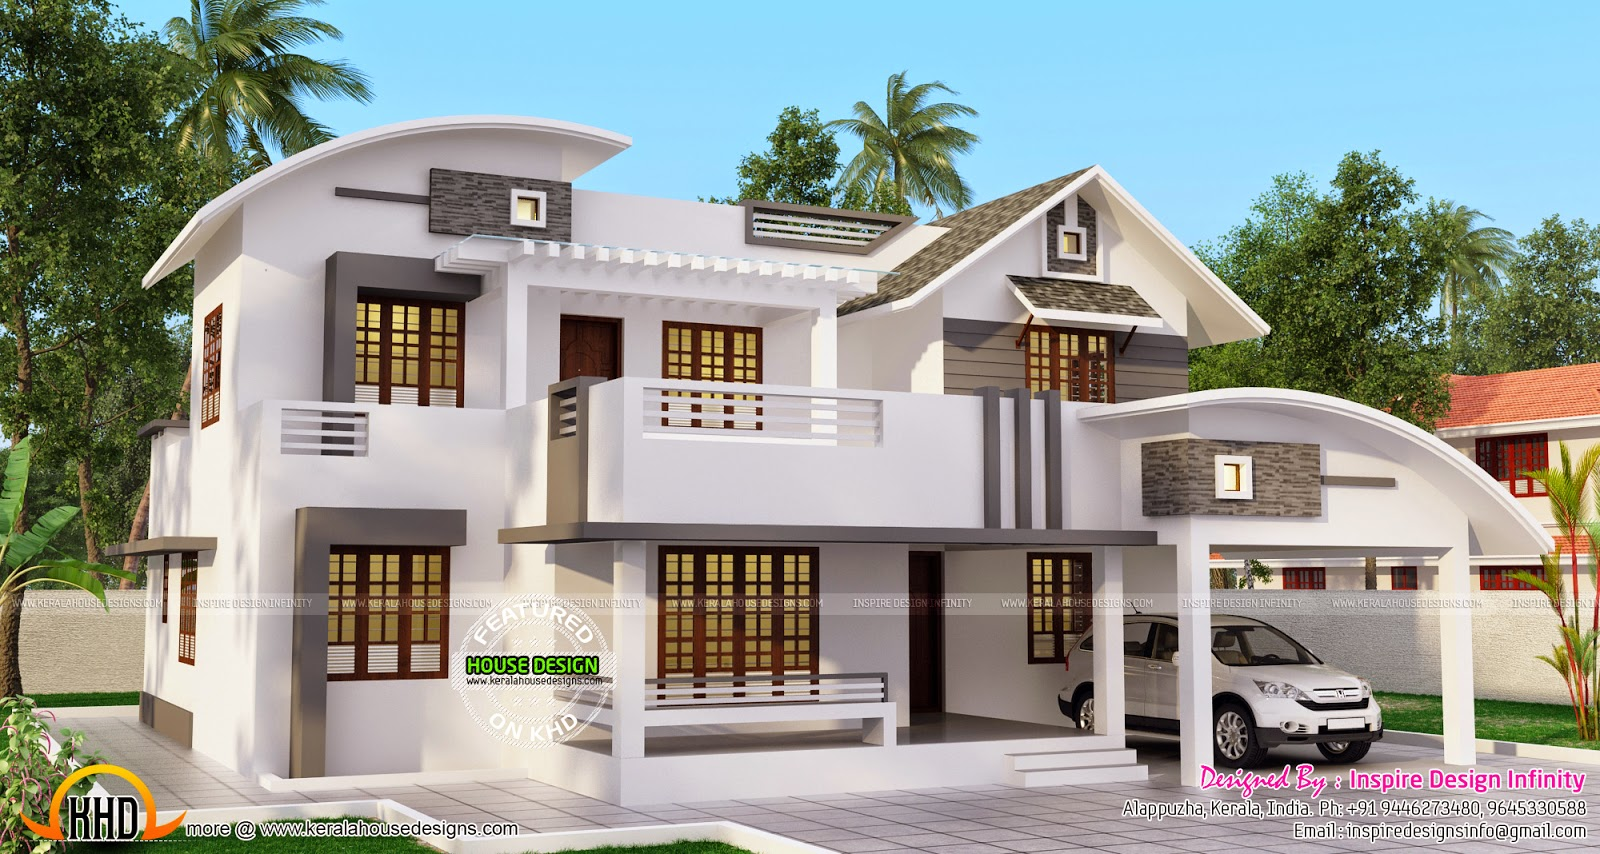 Double storied modern home kerala home design and floor for 3 story home plans and designs